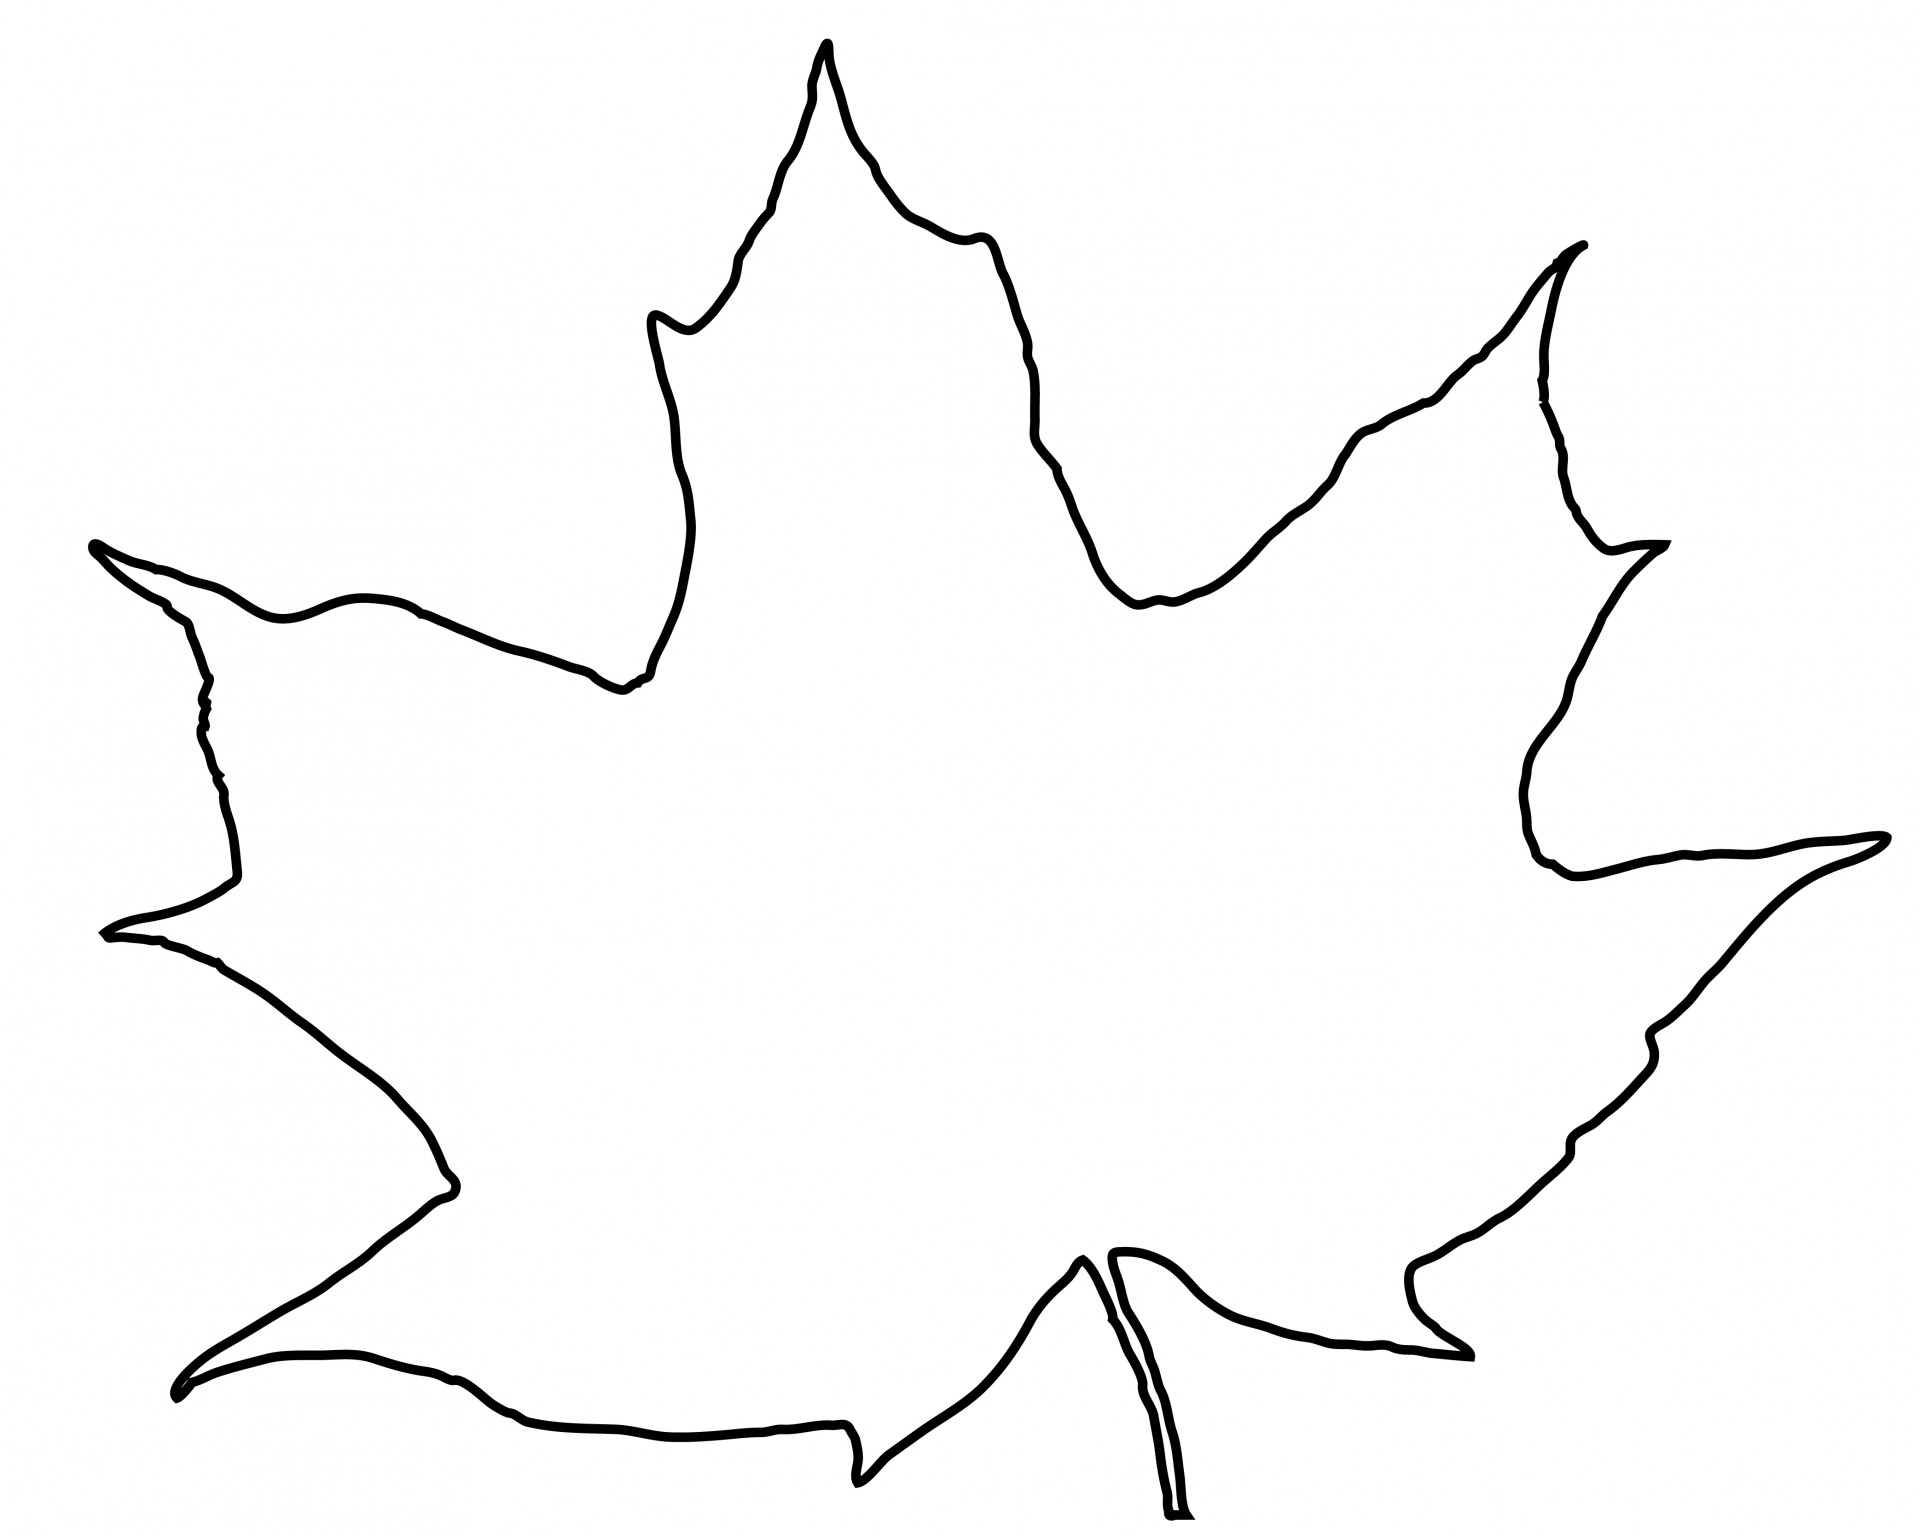 1920x1536 Leaf Outline Free Stock Photo